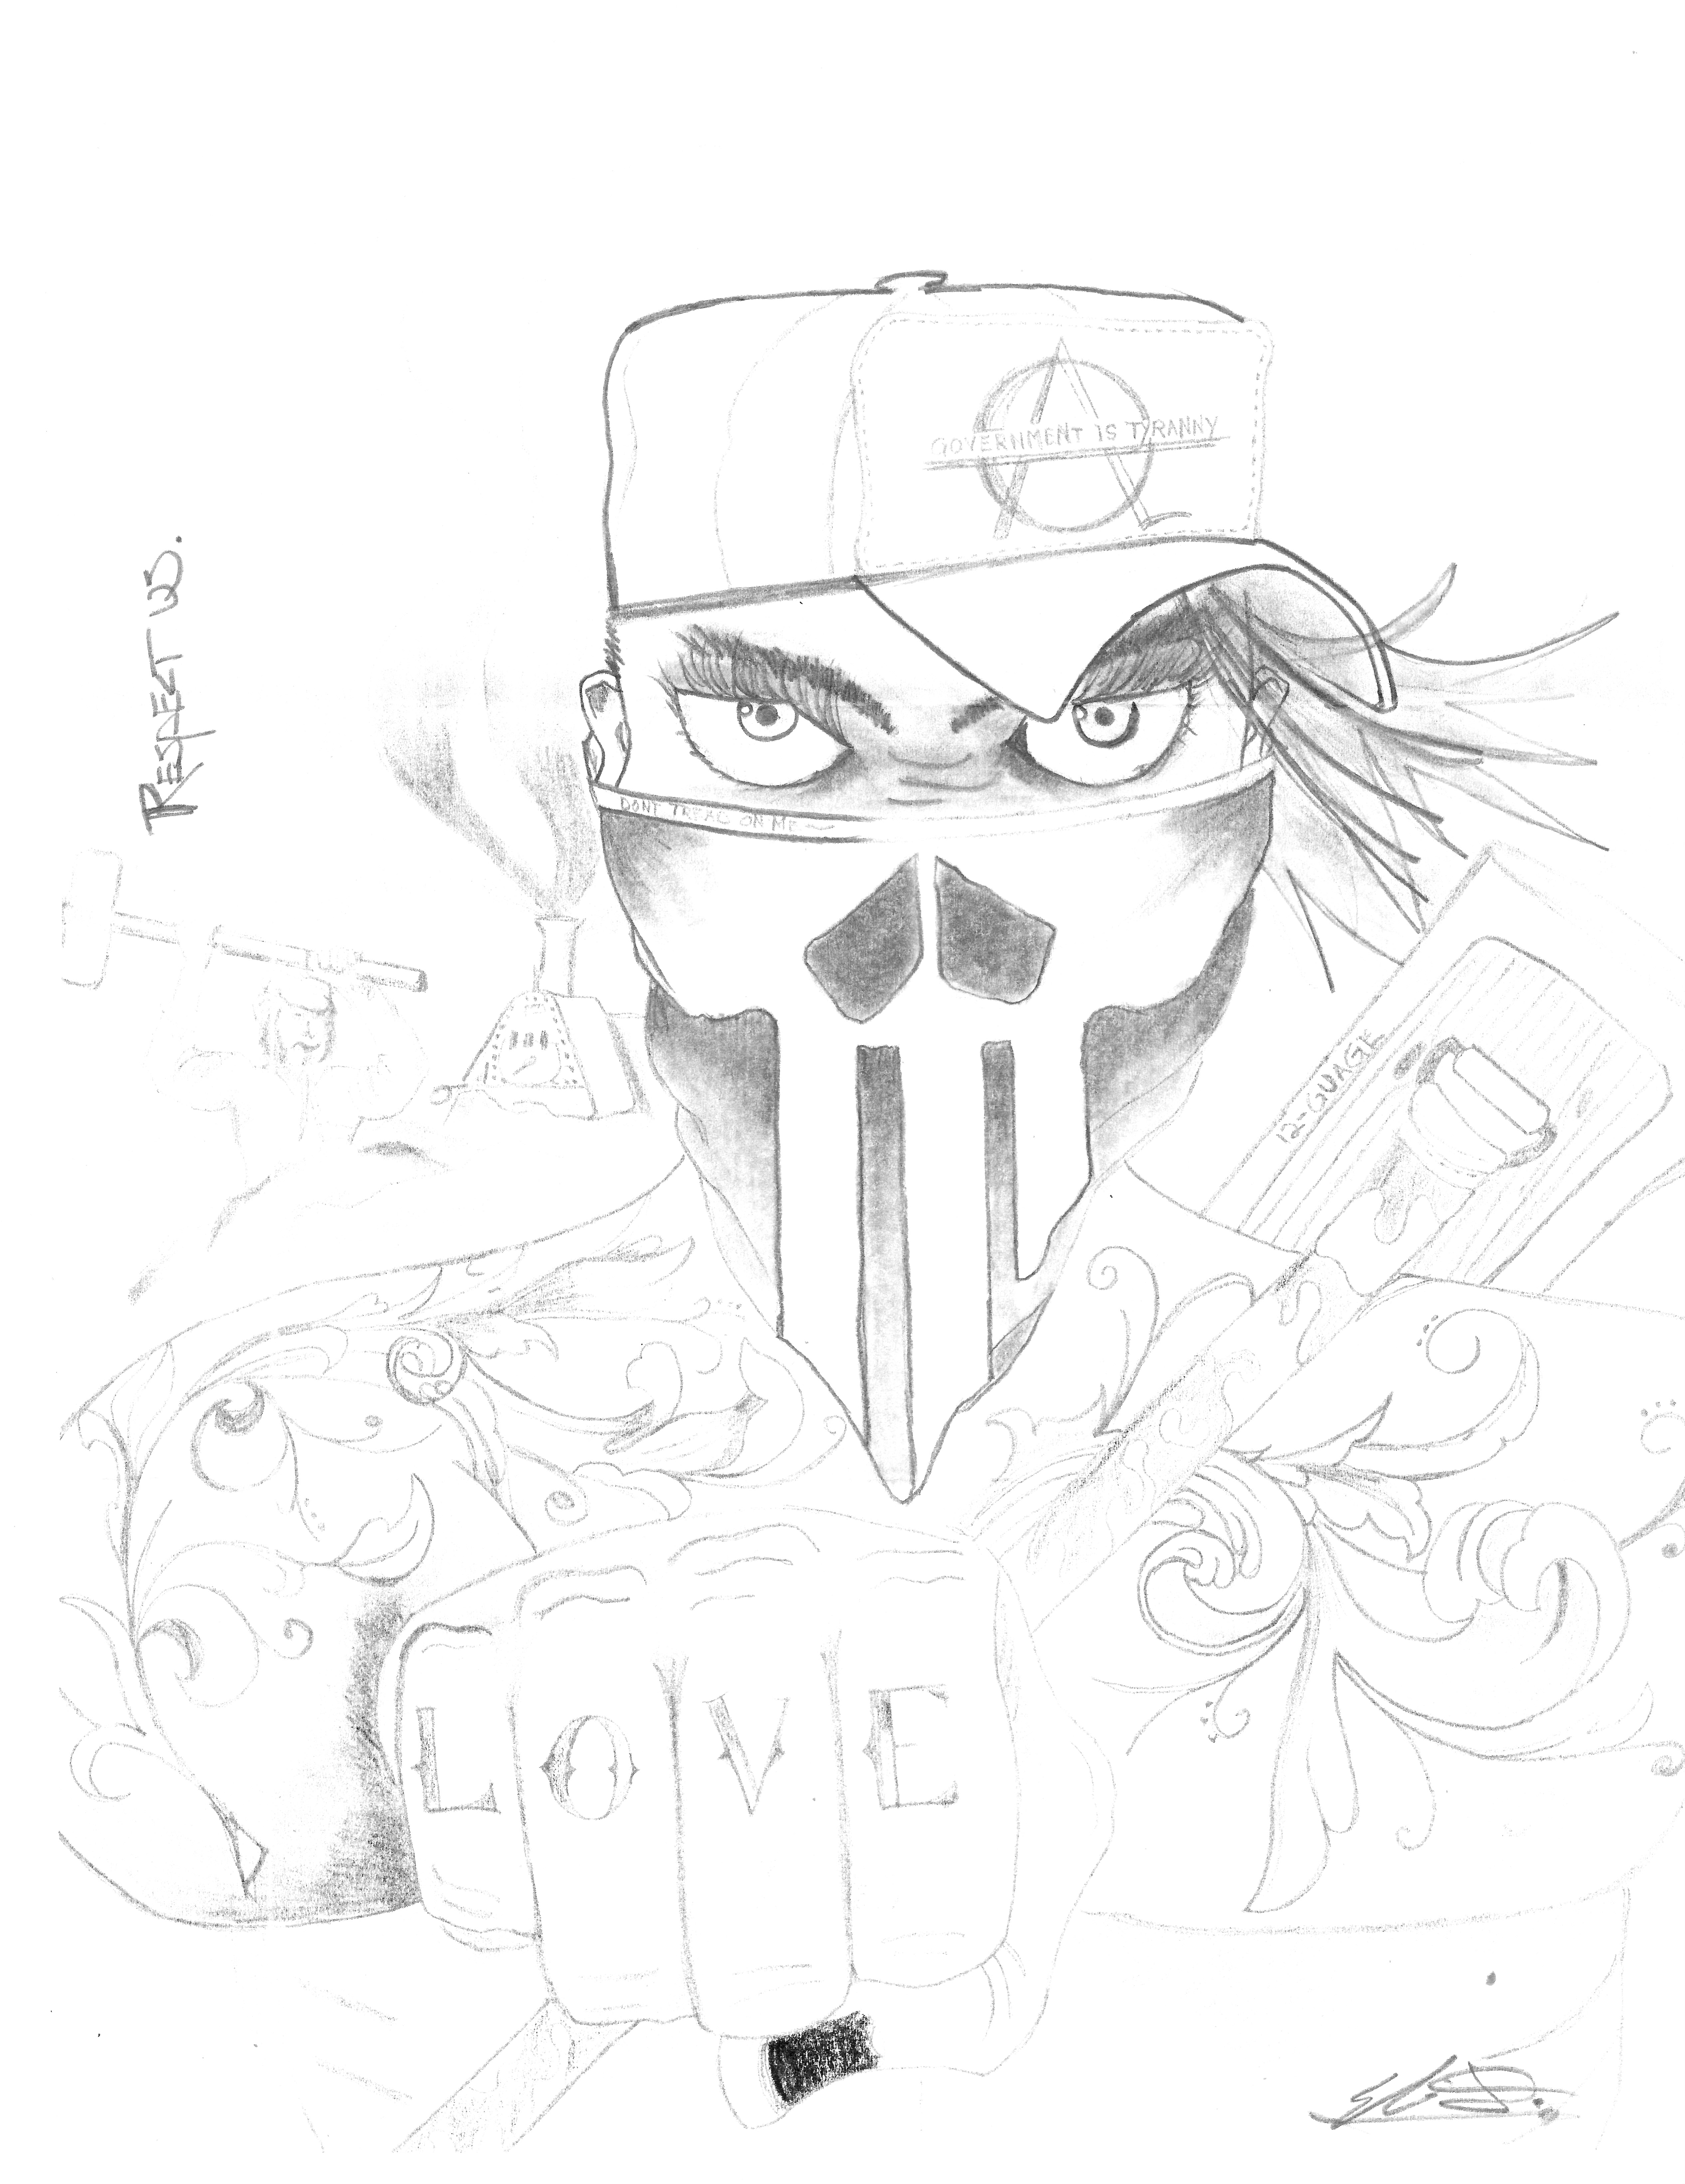 5063x6563 Respect Us! 3 Drawings From An Amerikan Mutt Amplify Voices Inside